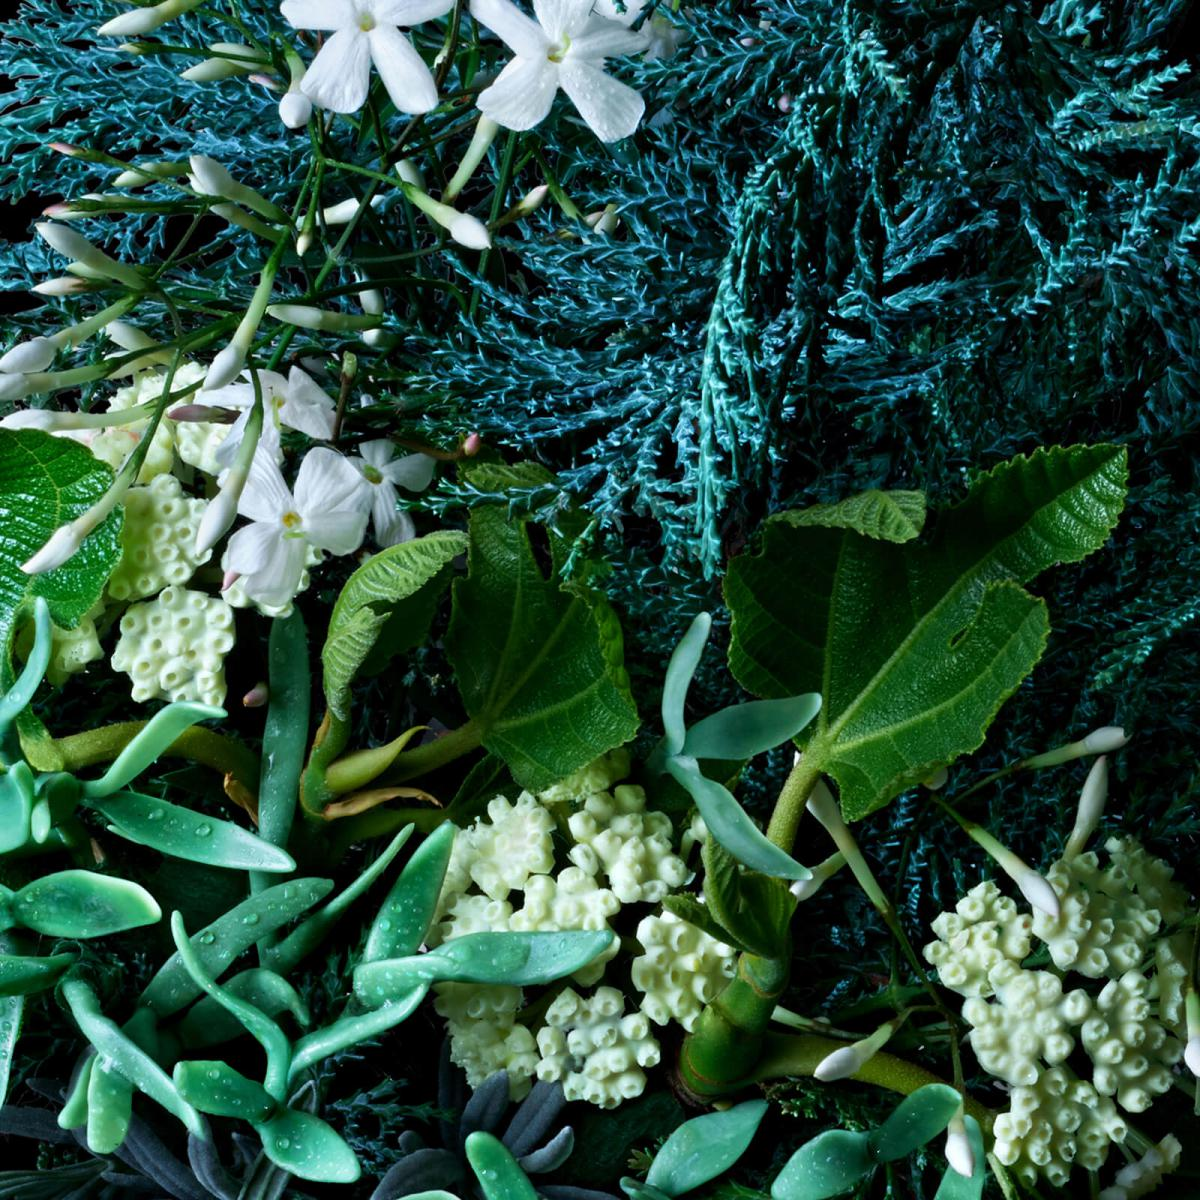 COFFRET FRAGRANCE COASTAL CYPRESS & SEA FENNEL